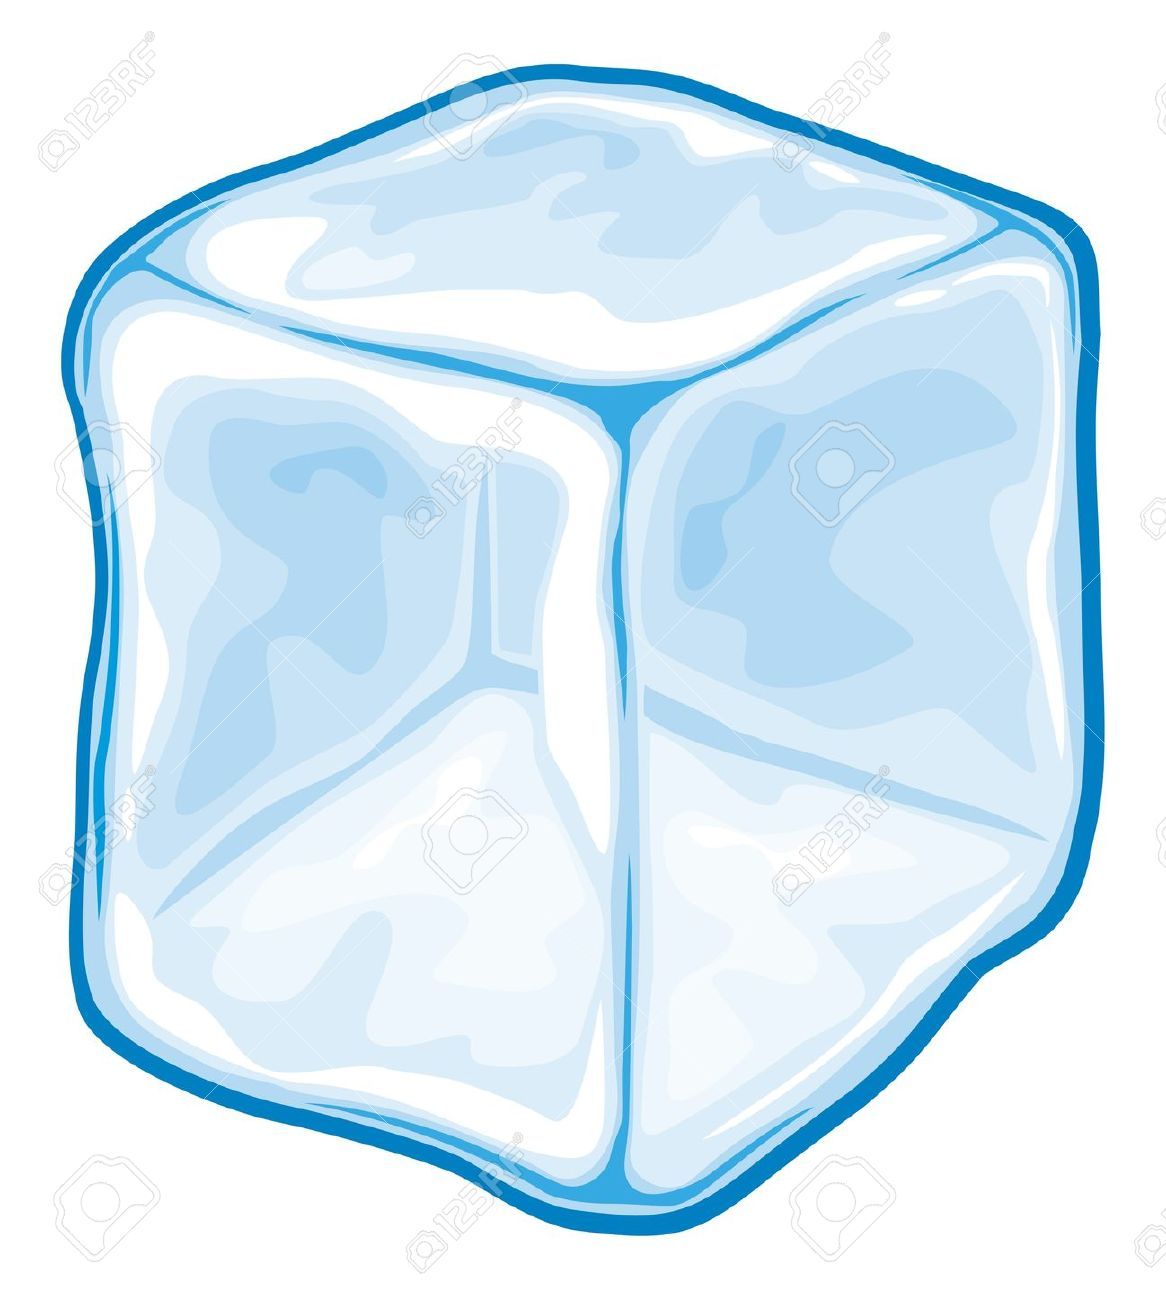 Clipart of ice picture library Ice Clipart | Free download best Ice Clipart on ClipArtMag.com picture library